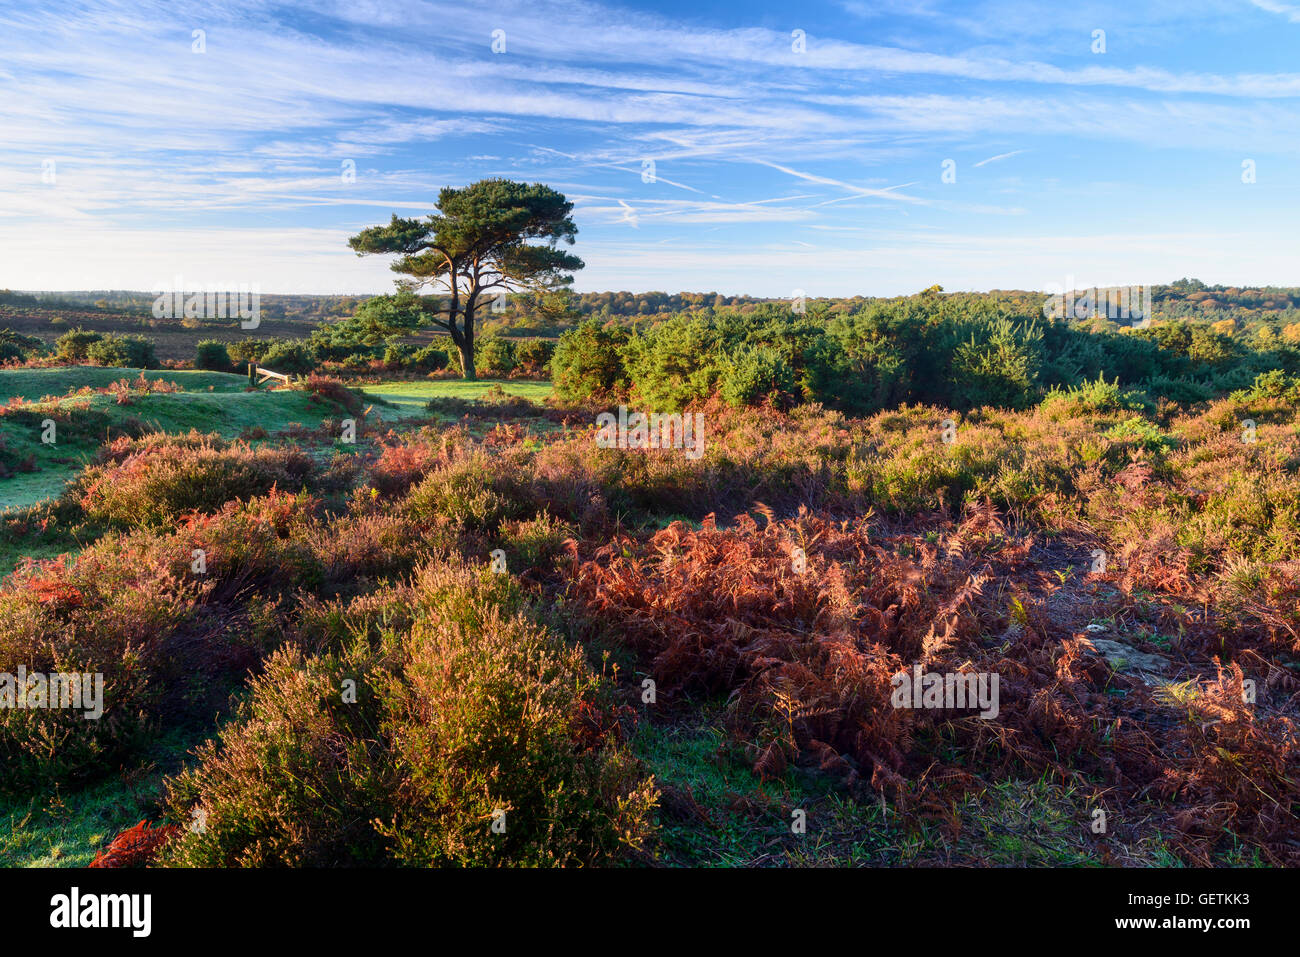 A view of a single pine tree at Bratley View in the New Forest. Stock Photo